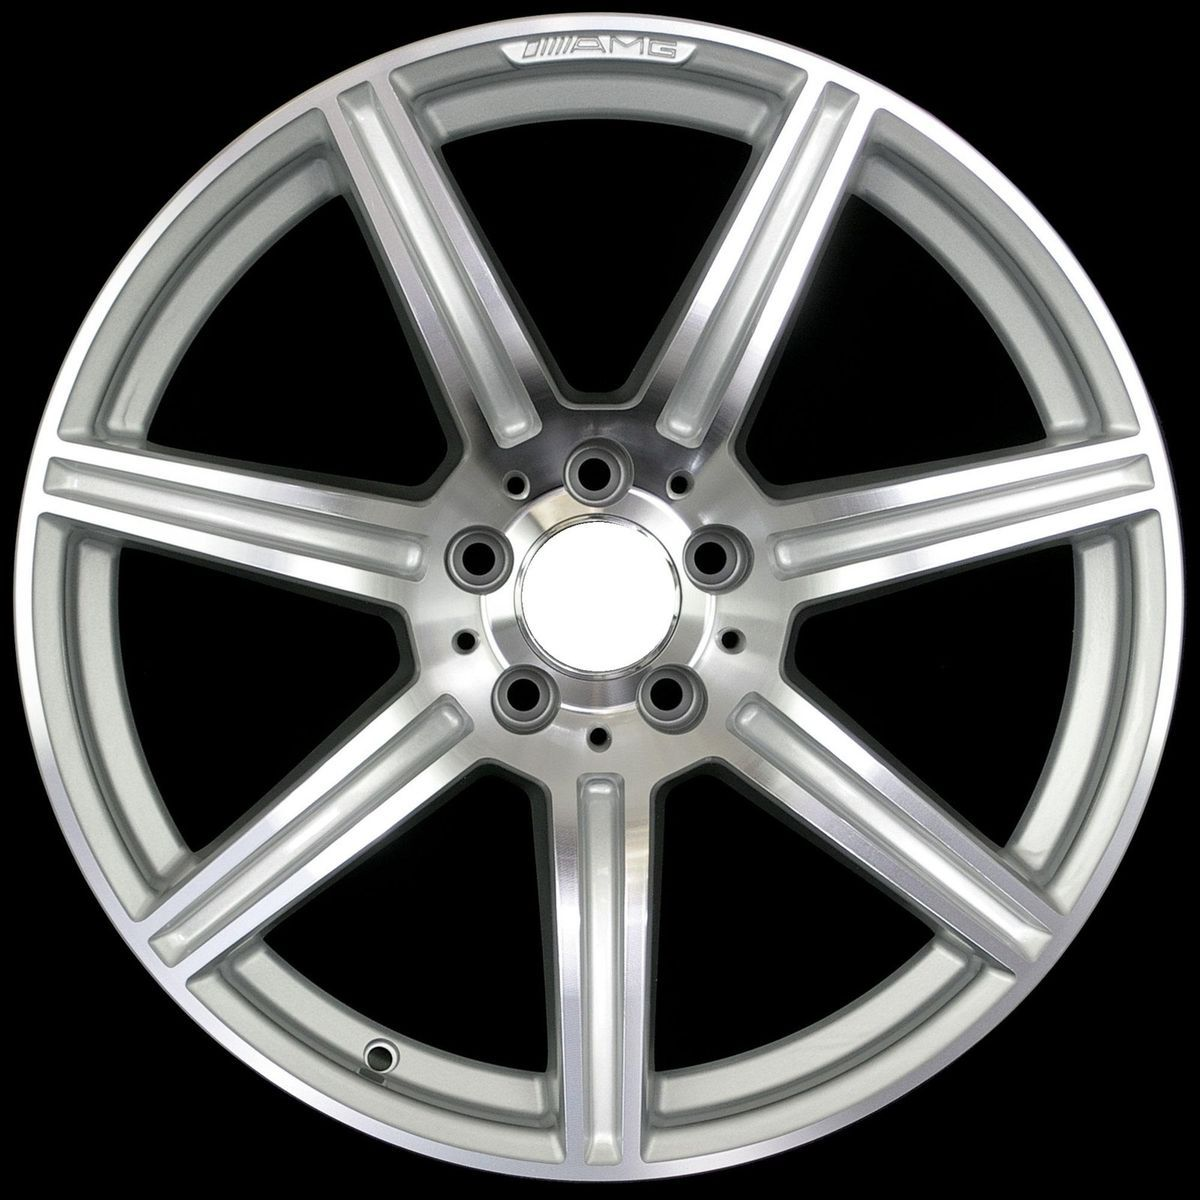 19 AMG E63 Style Staggered Wheels Rims Fit Mercedes SLK300 SLK320